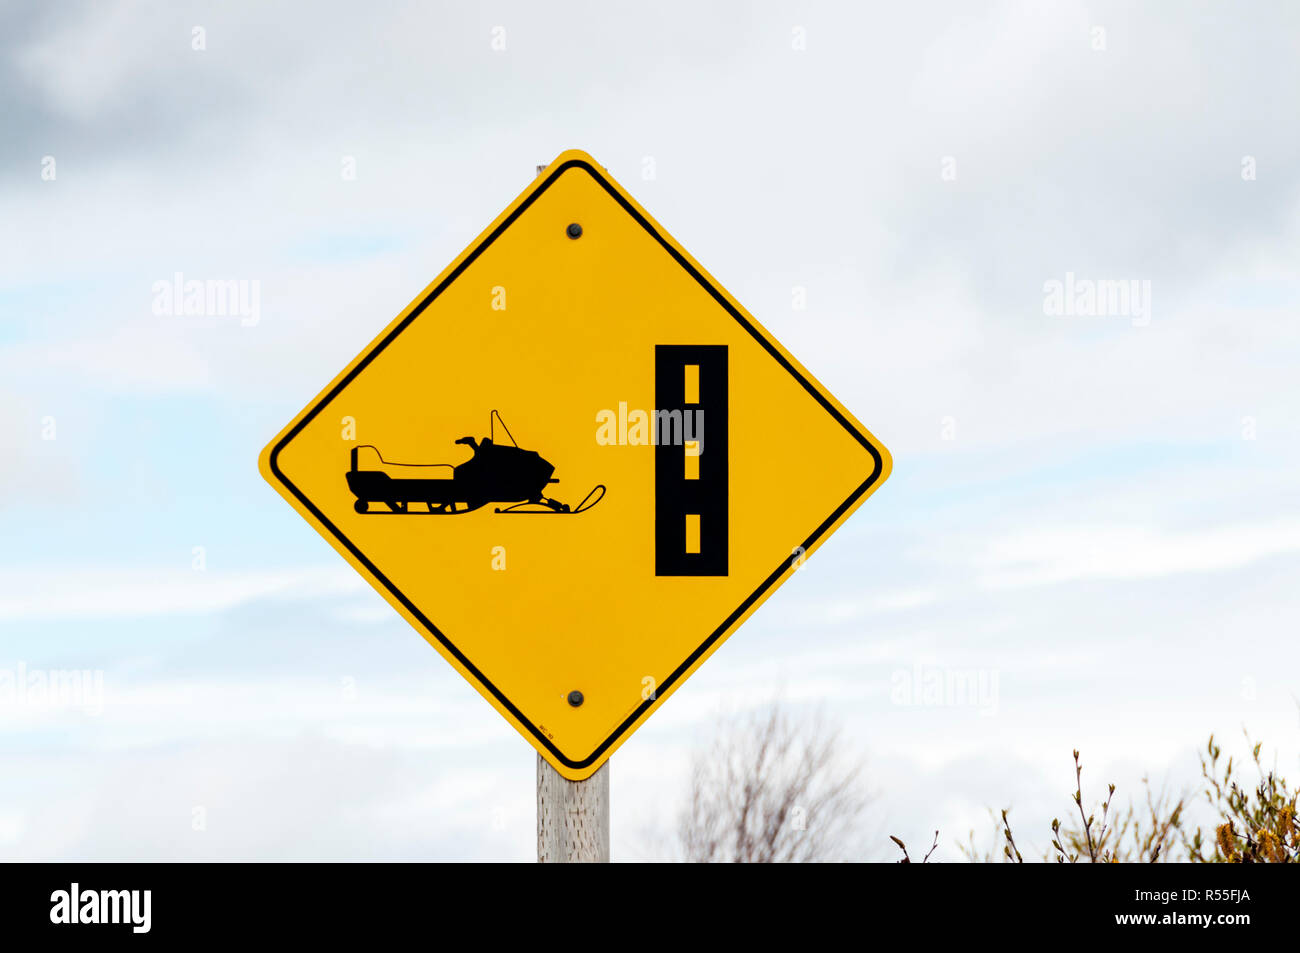 Roadsign for a skidoo or snowmobile trail in Labrador, Canada. - Stock Image